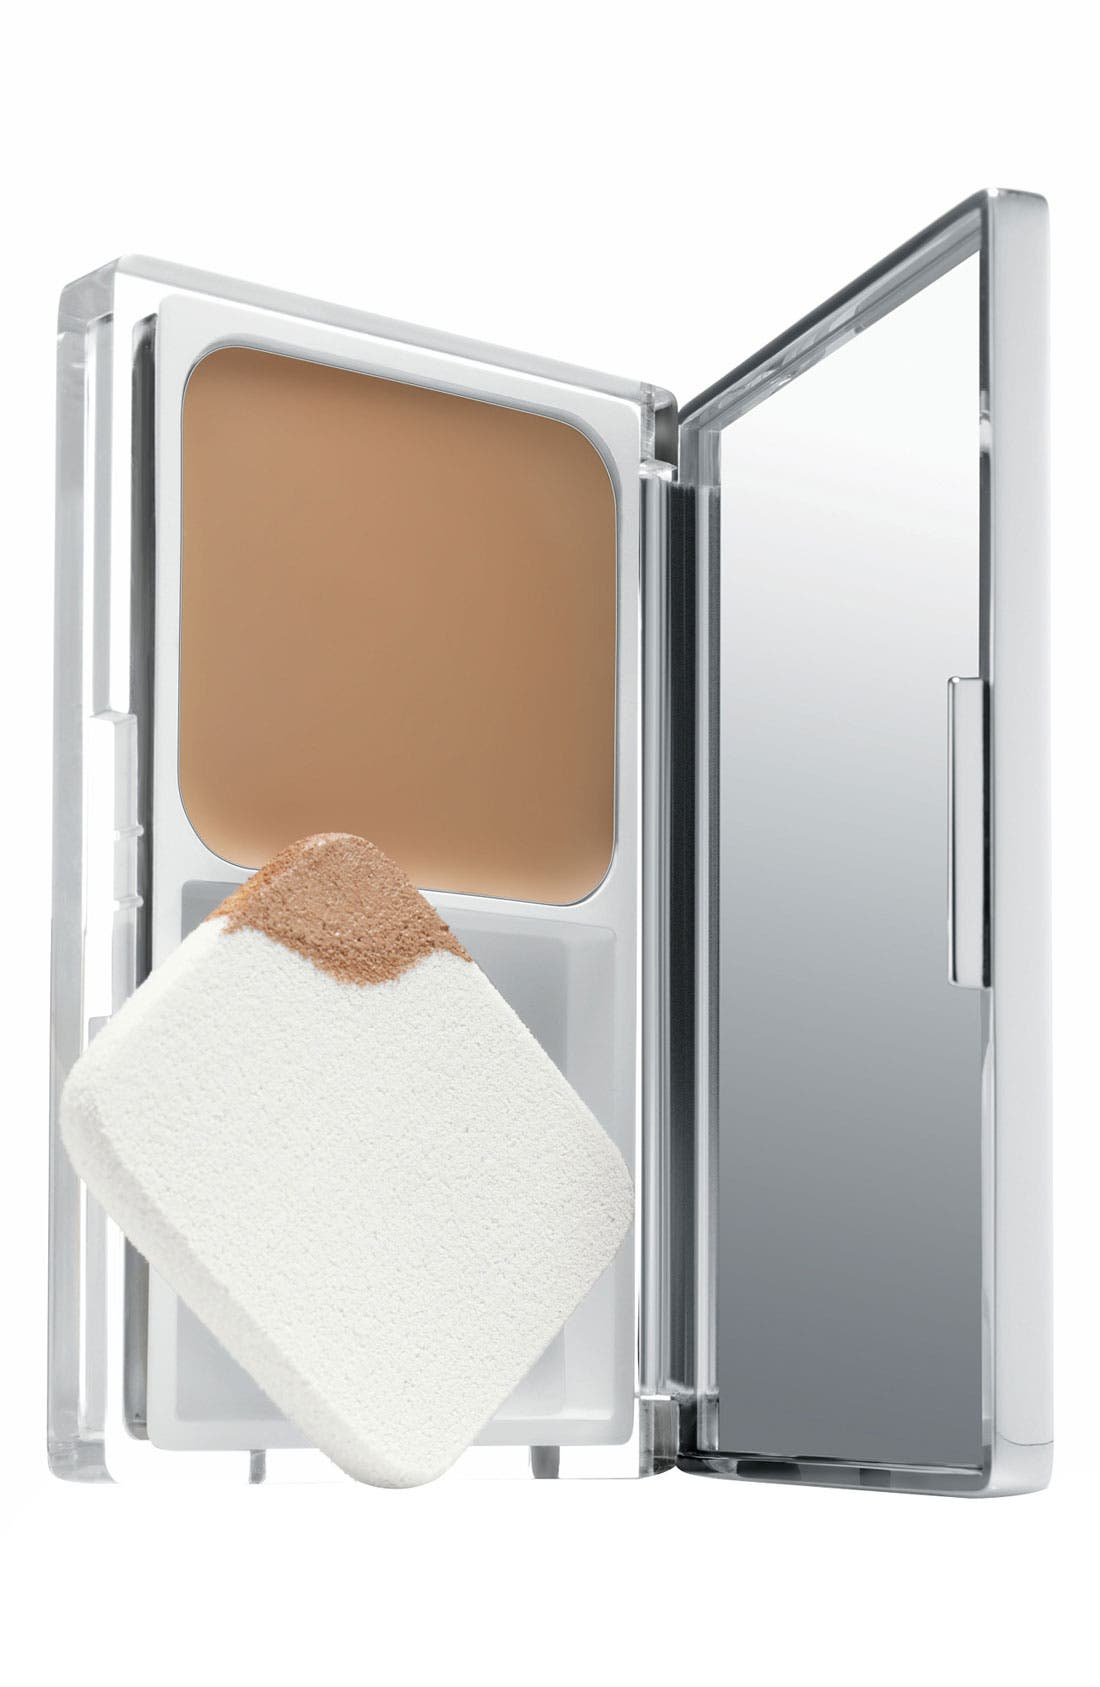 Clinique 'Even Better' Compact Makeup Broad Spectrum SPF 15